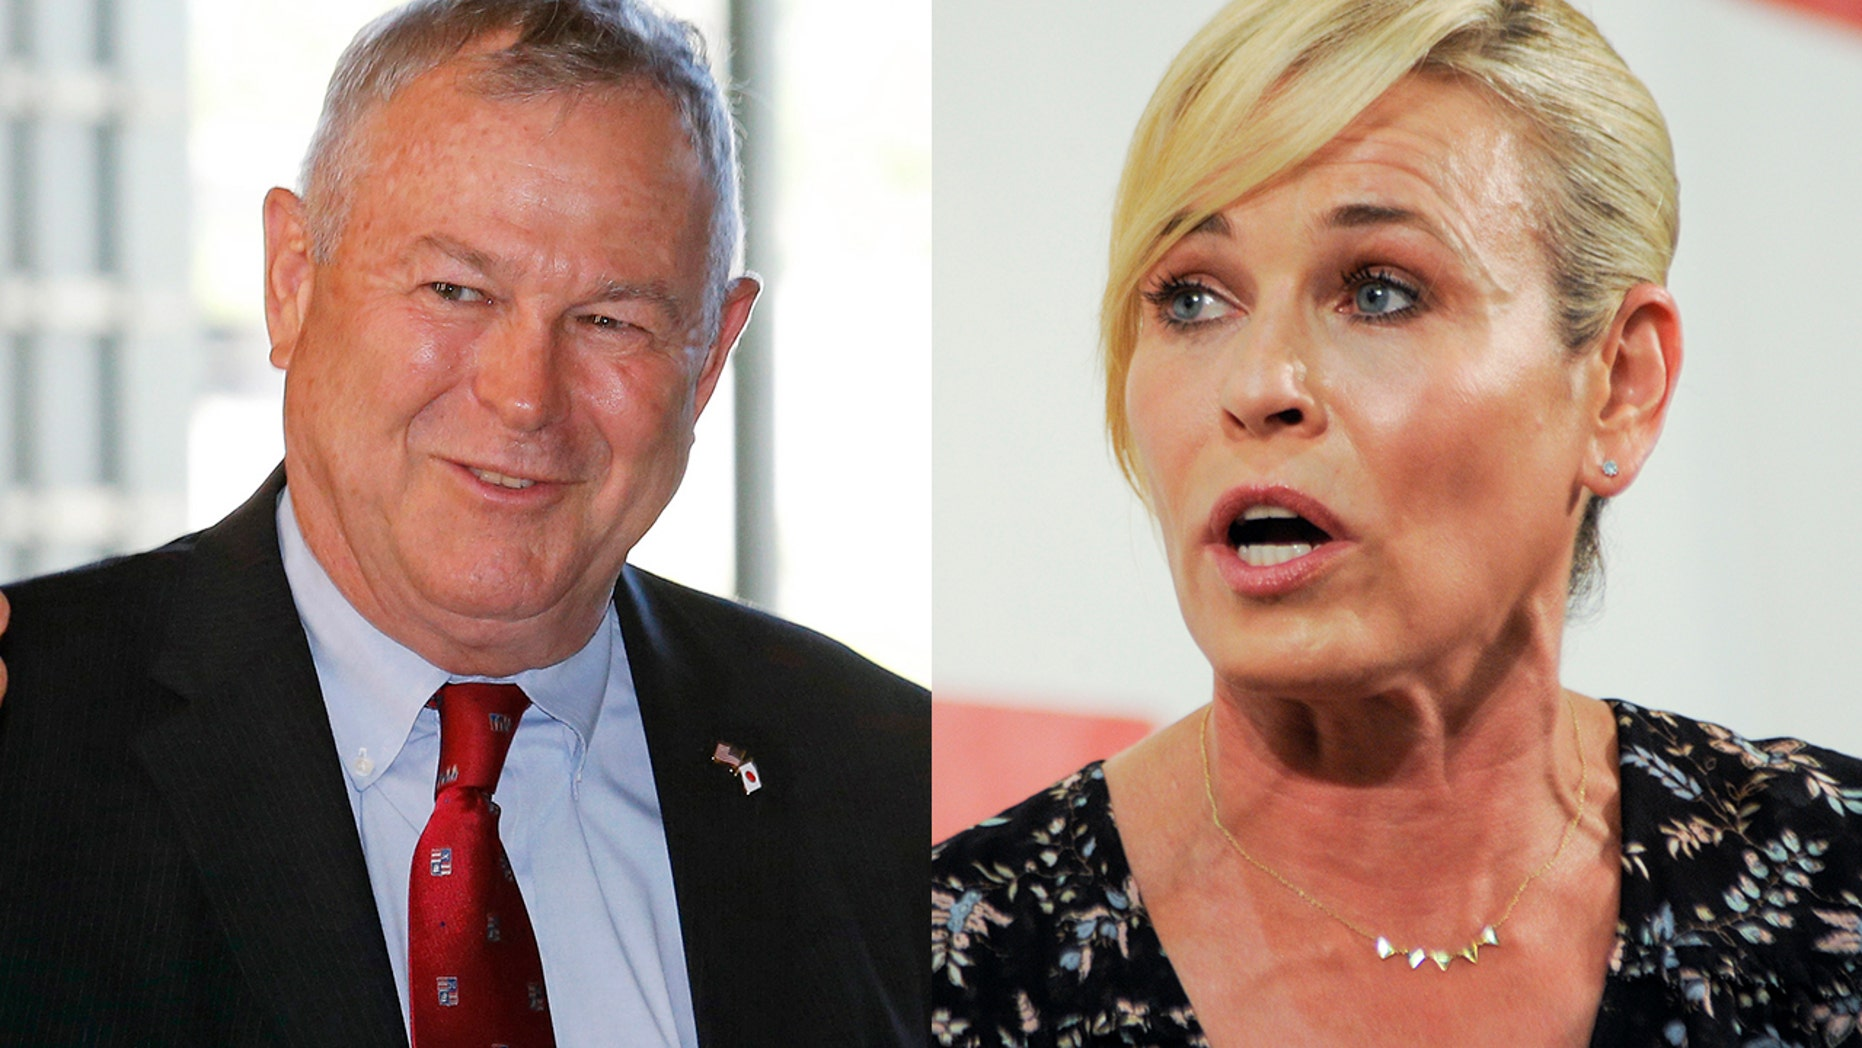 Chelsea Handler (right) mistakenly referred to Rep. Dana Rohrabacher (left) as a woman.